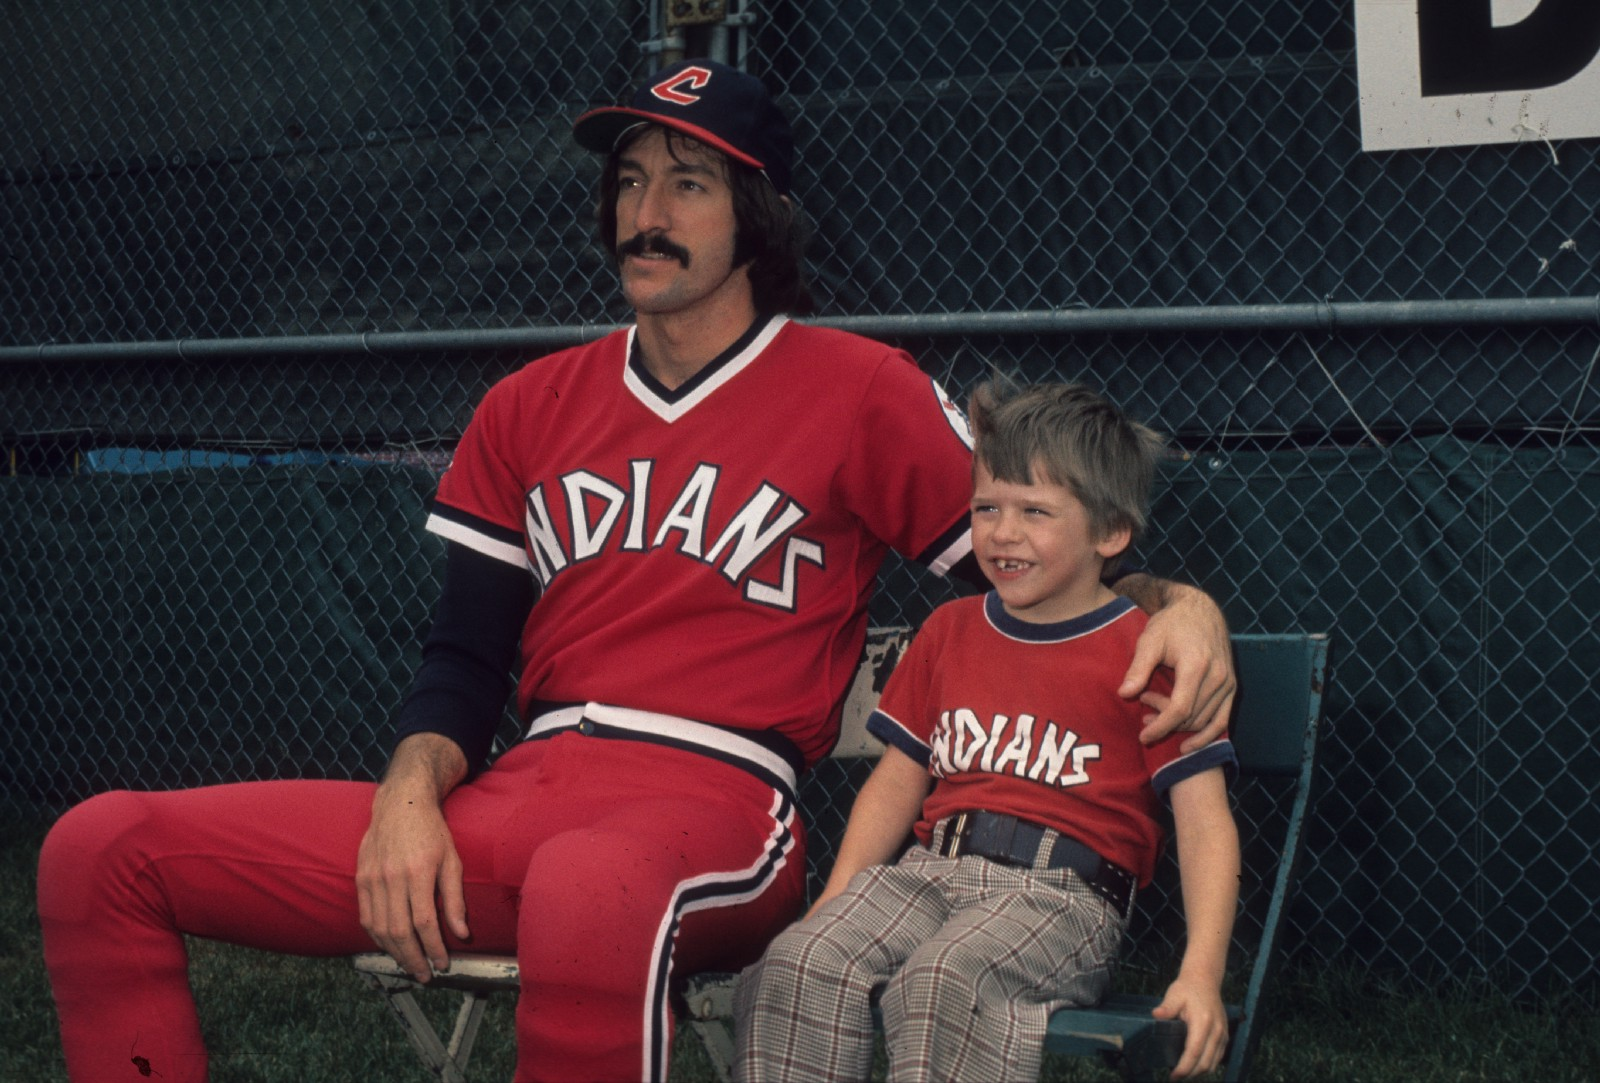 297a1a21c24 In the running for the worst  1970s Indians all-red uniforms.